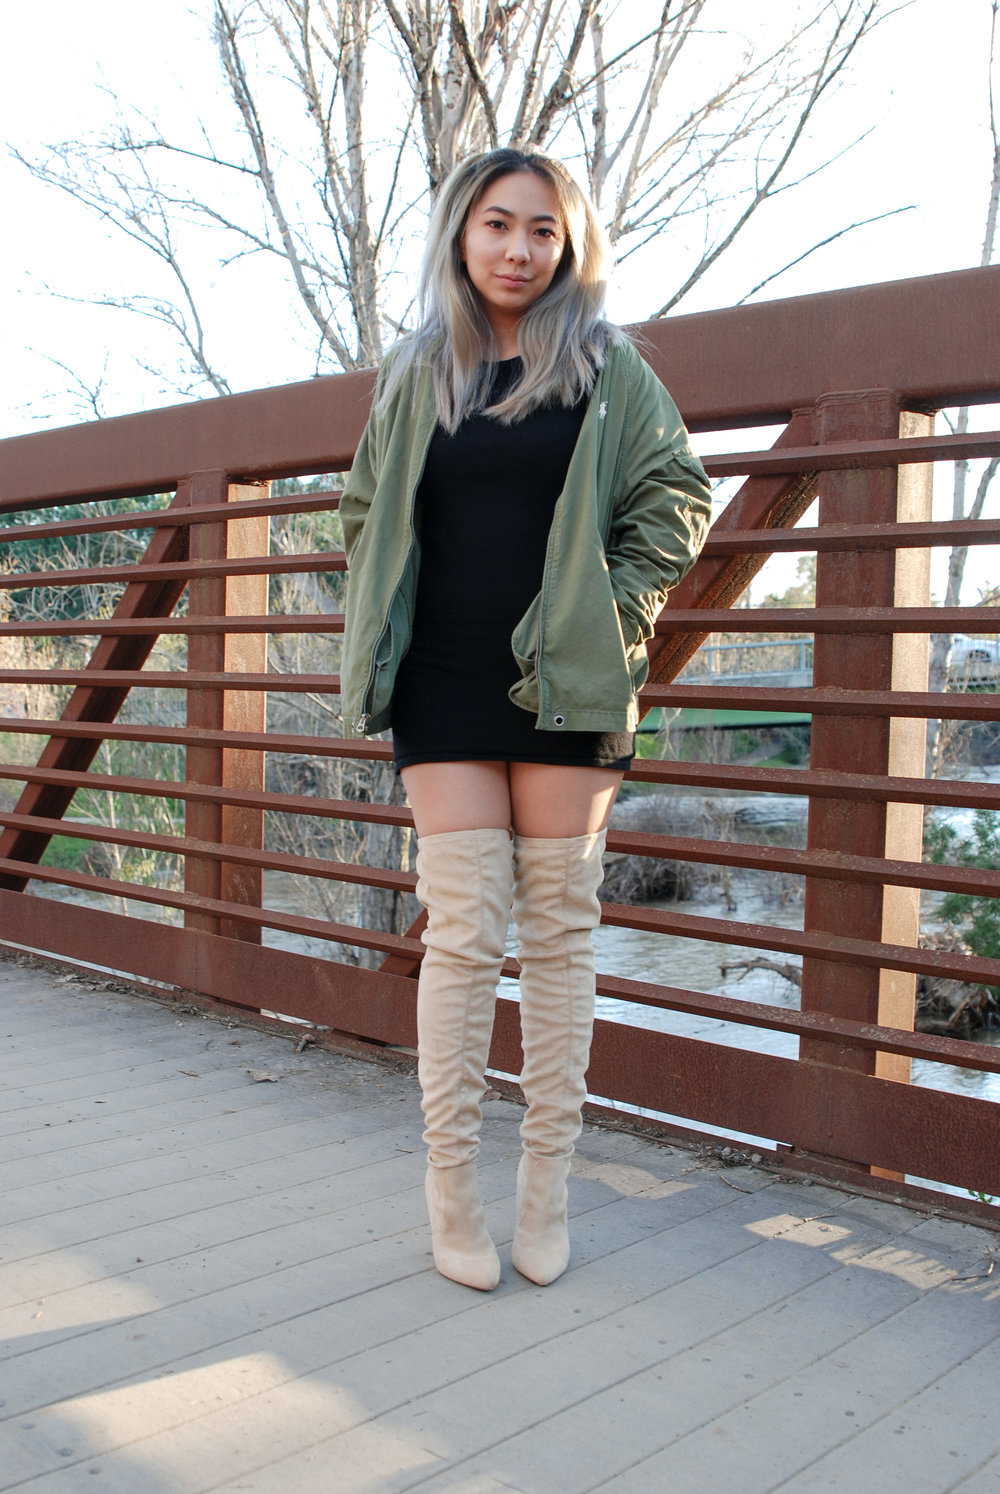 Cotton-Blend Windbreaker in Basic Olive (Men's Size M) - $145   Purchased from  Ralph Lauren  | In Stock   Cap Sleeve Knit Black Dress (One Size) - $30   Purchased from Brandy Melville USA | Out of Stock   Nude Faux Suede Pointed Toe Over the Knee Heeled Boots (Size 6) - $90*   Purchased from  Missguided  | In Stock, on sale for $45*